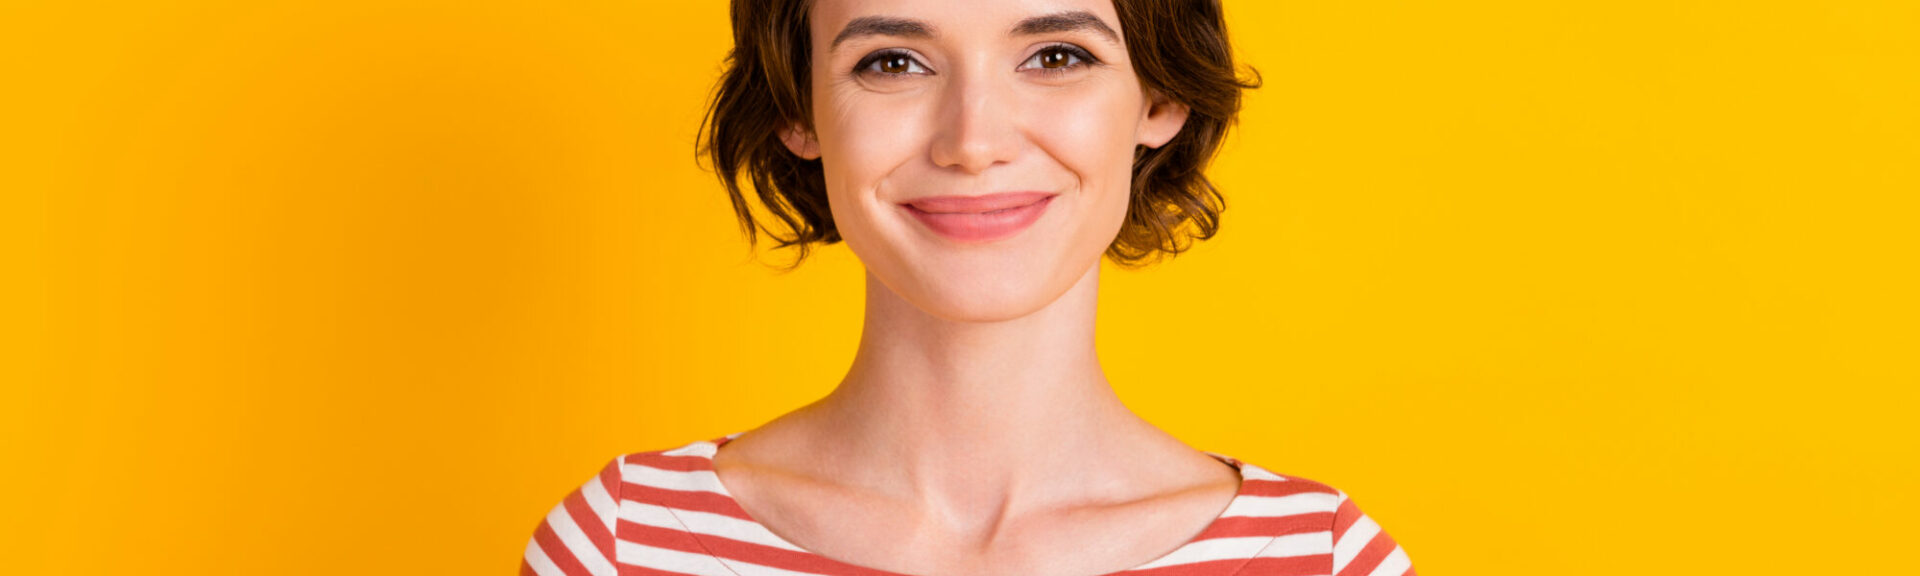 Close up portrait of satisfied gorgeous person smile look camera isolated on yellow color background